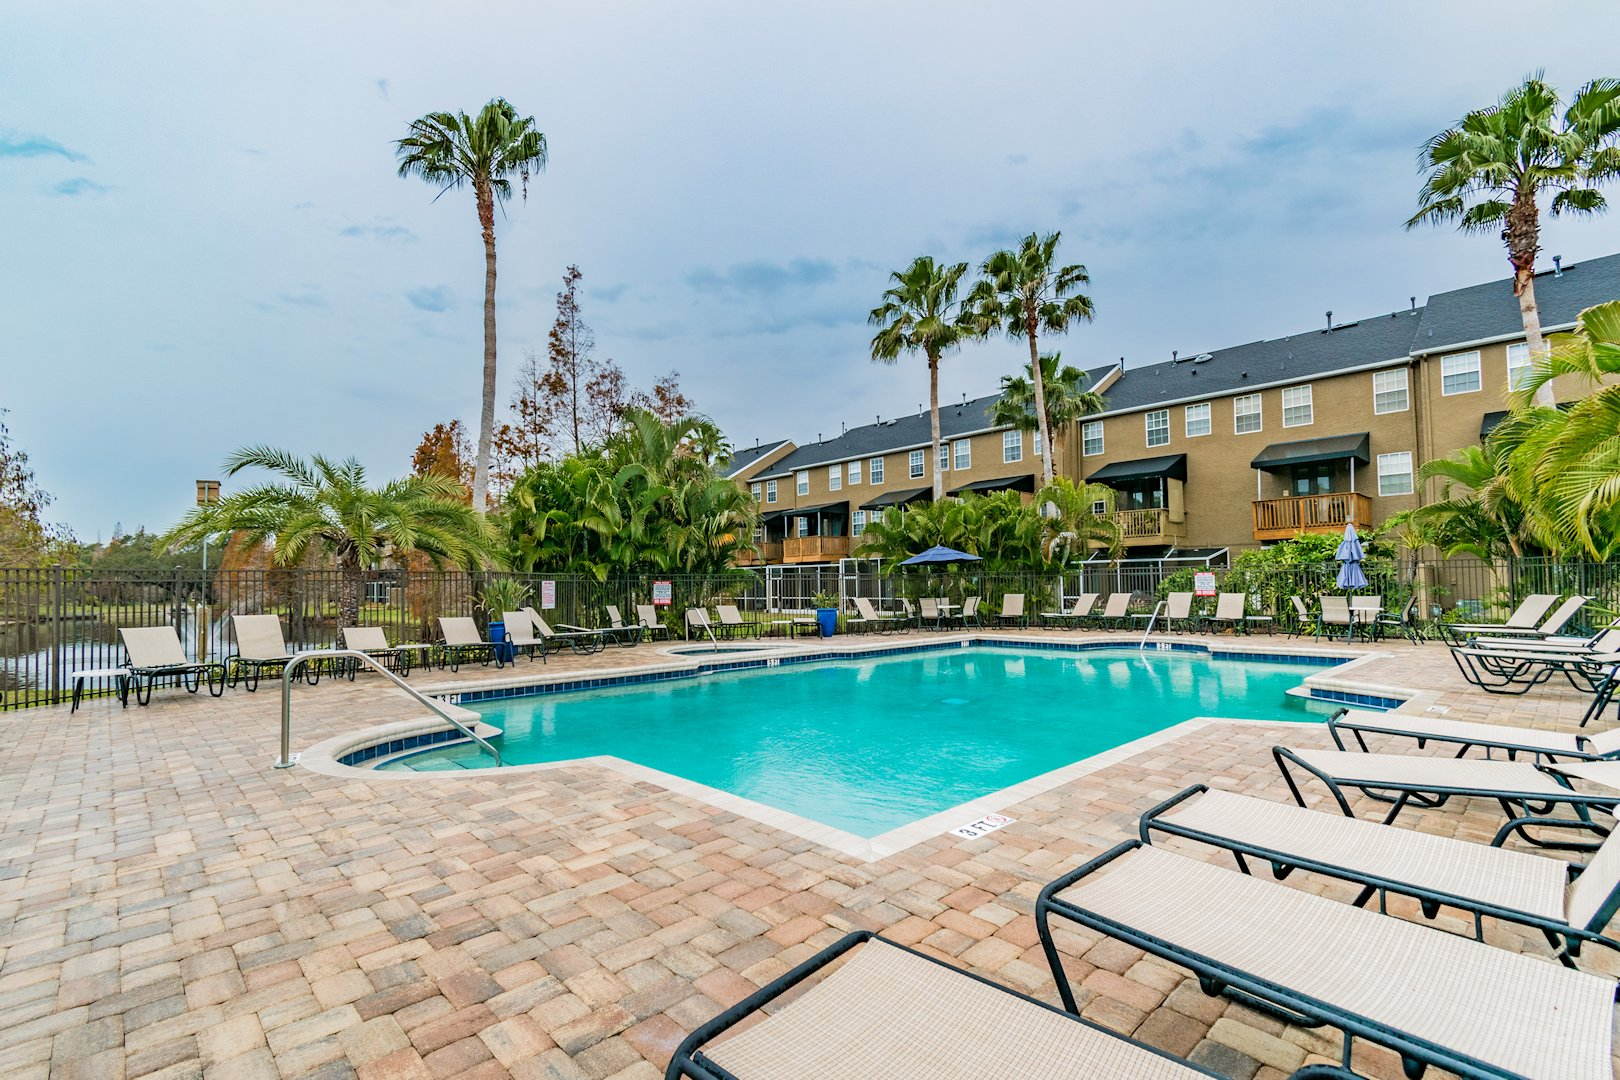 2929 bayshore Pointe Dr. Tampa Fl, Bayshore Pointe Townhomes (38)